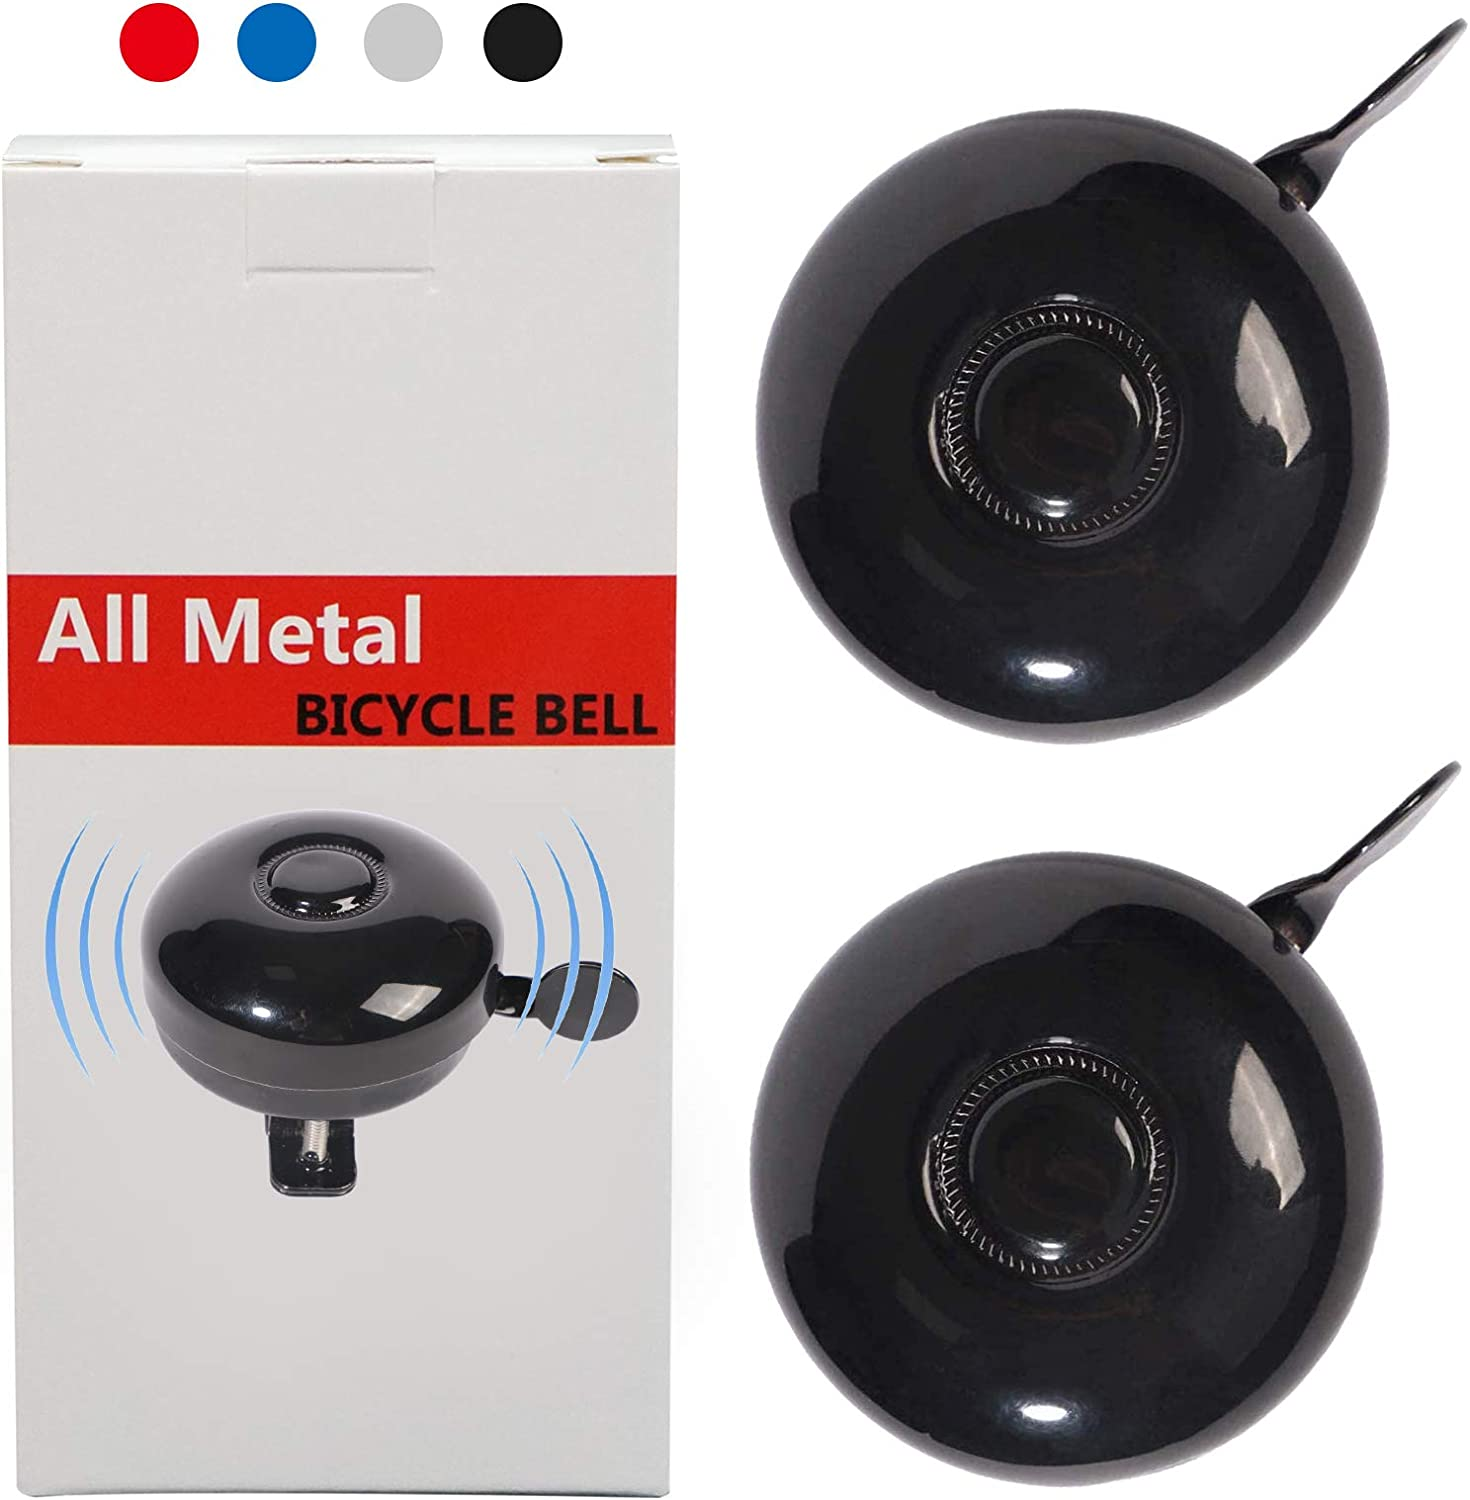 Details about  /Bicycle Handlebar Bells Bike Bell Bicycle Bells Horn Mountain Bike Accesso LuTs